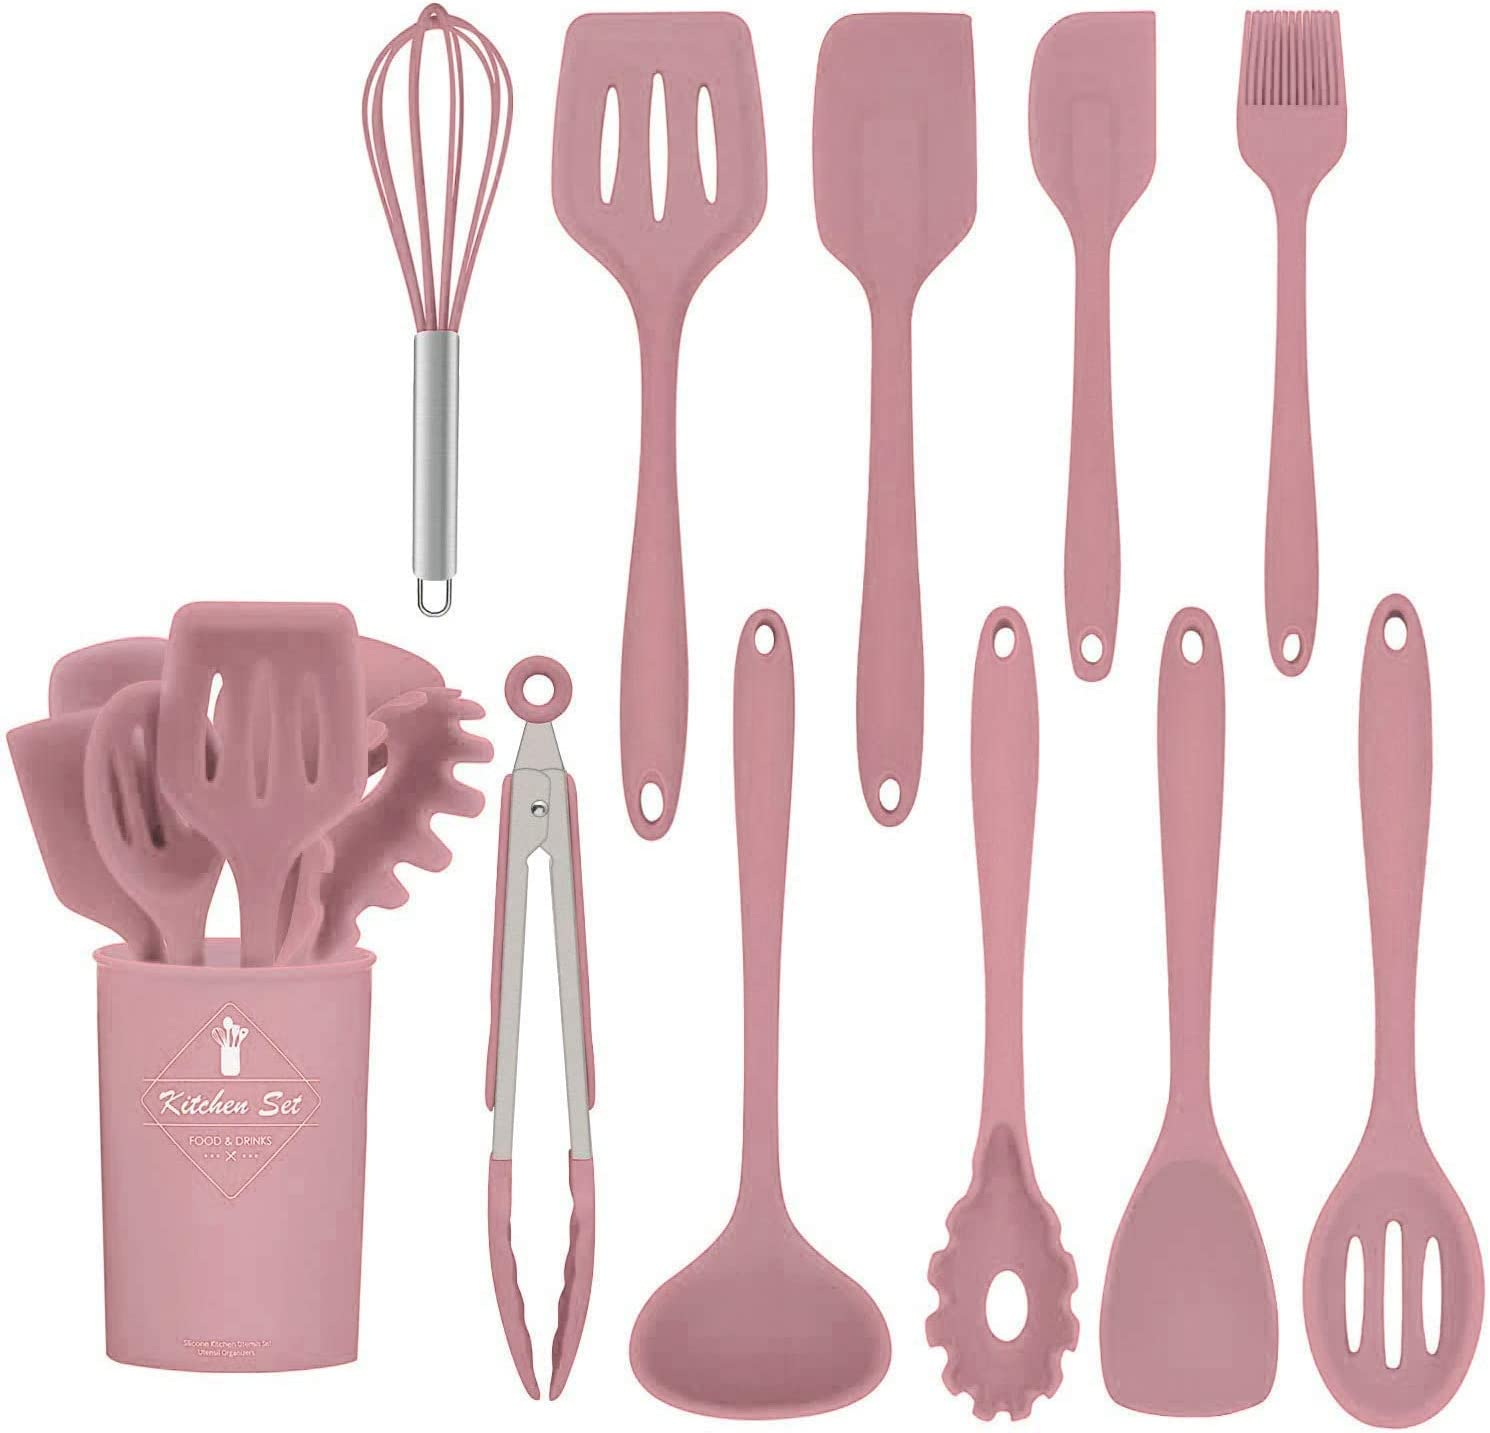 K /& G Kitchen Utensils Silicone Heat-Resistant Non-Stick Silicone Cookware 11-Piece Pink Spatula Set,Turner Slotted,Spoon Brush Spatula Tongs,Pasta Fork and Holder Soup Ladle Whisk Turner